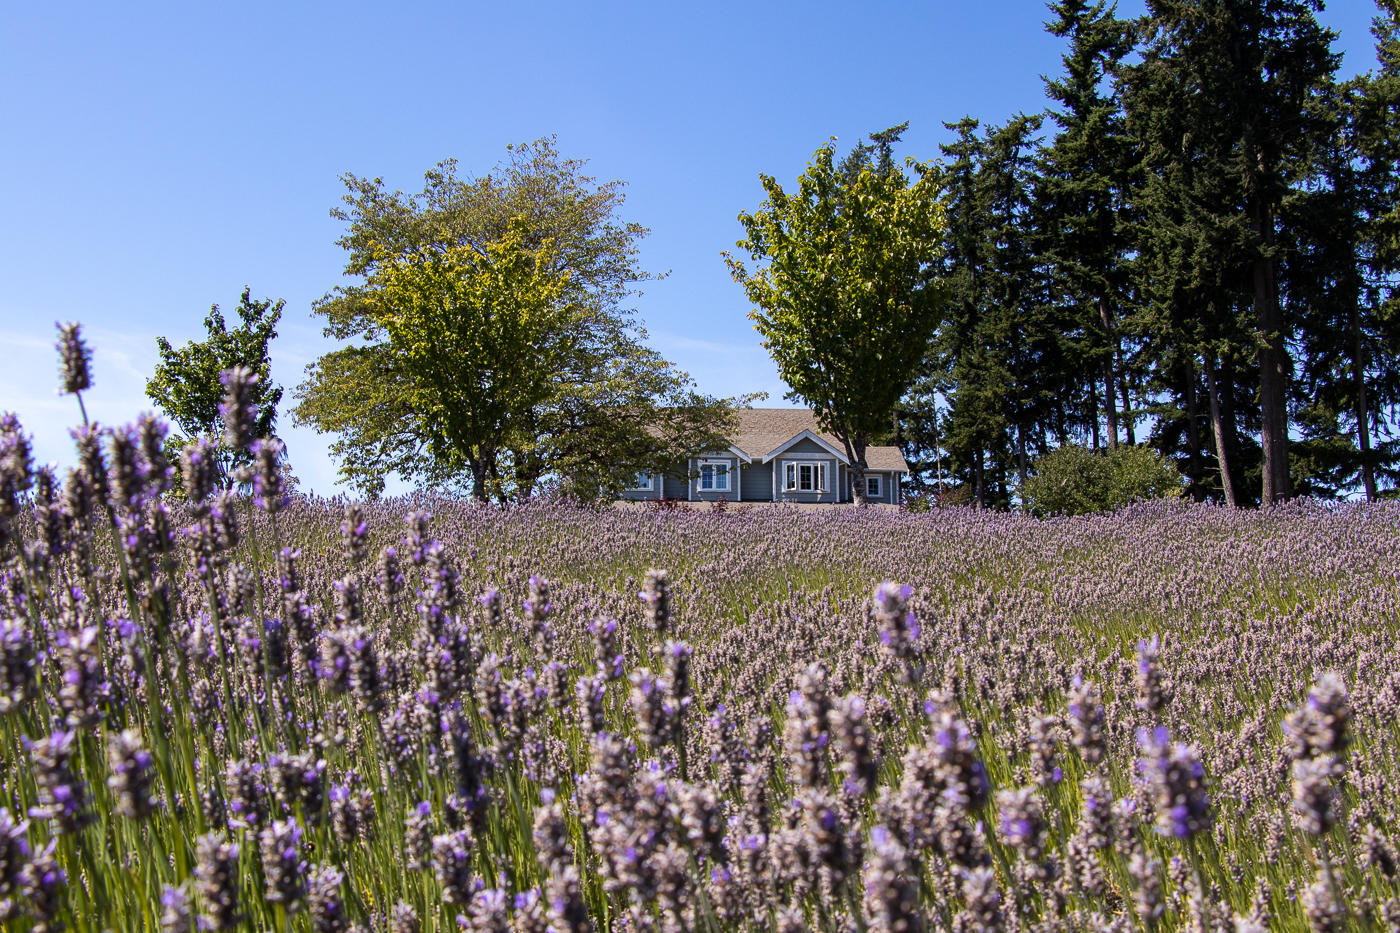 Lavender fields - a piece of Provence on Vancouver Island.